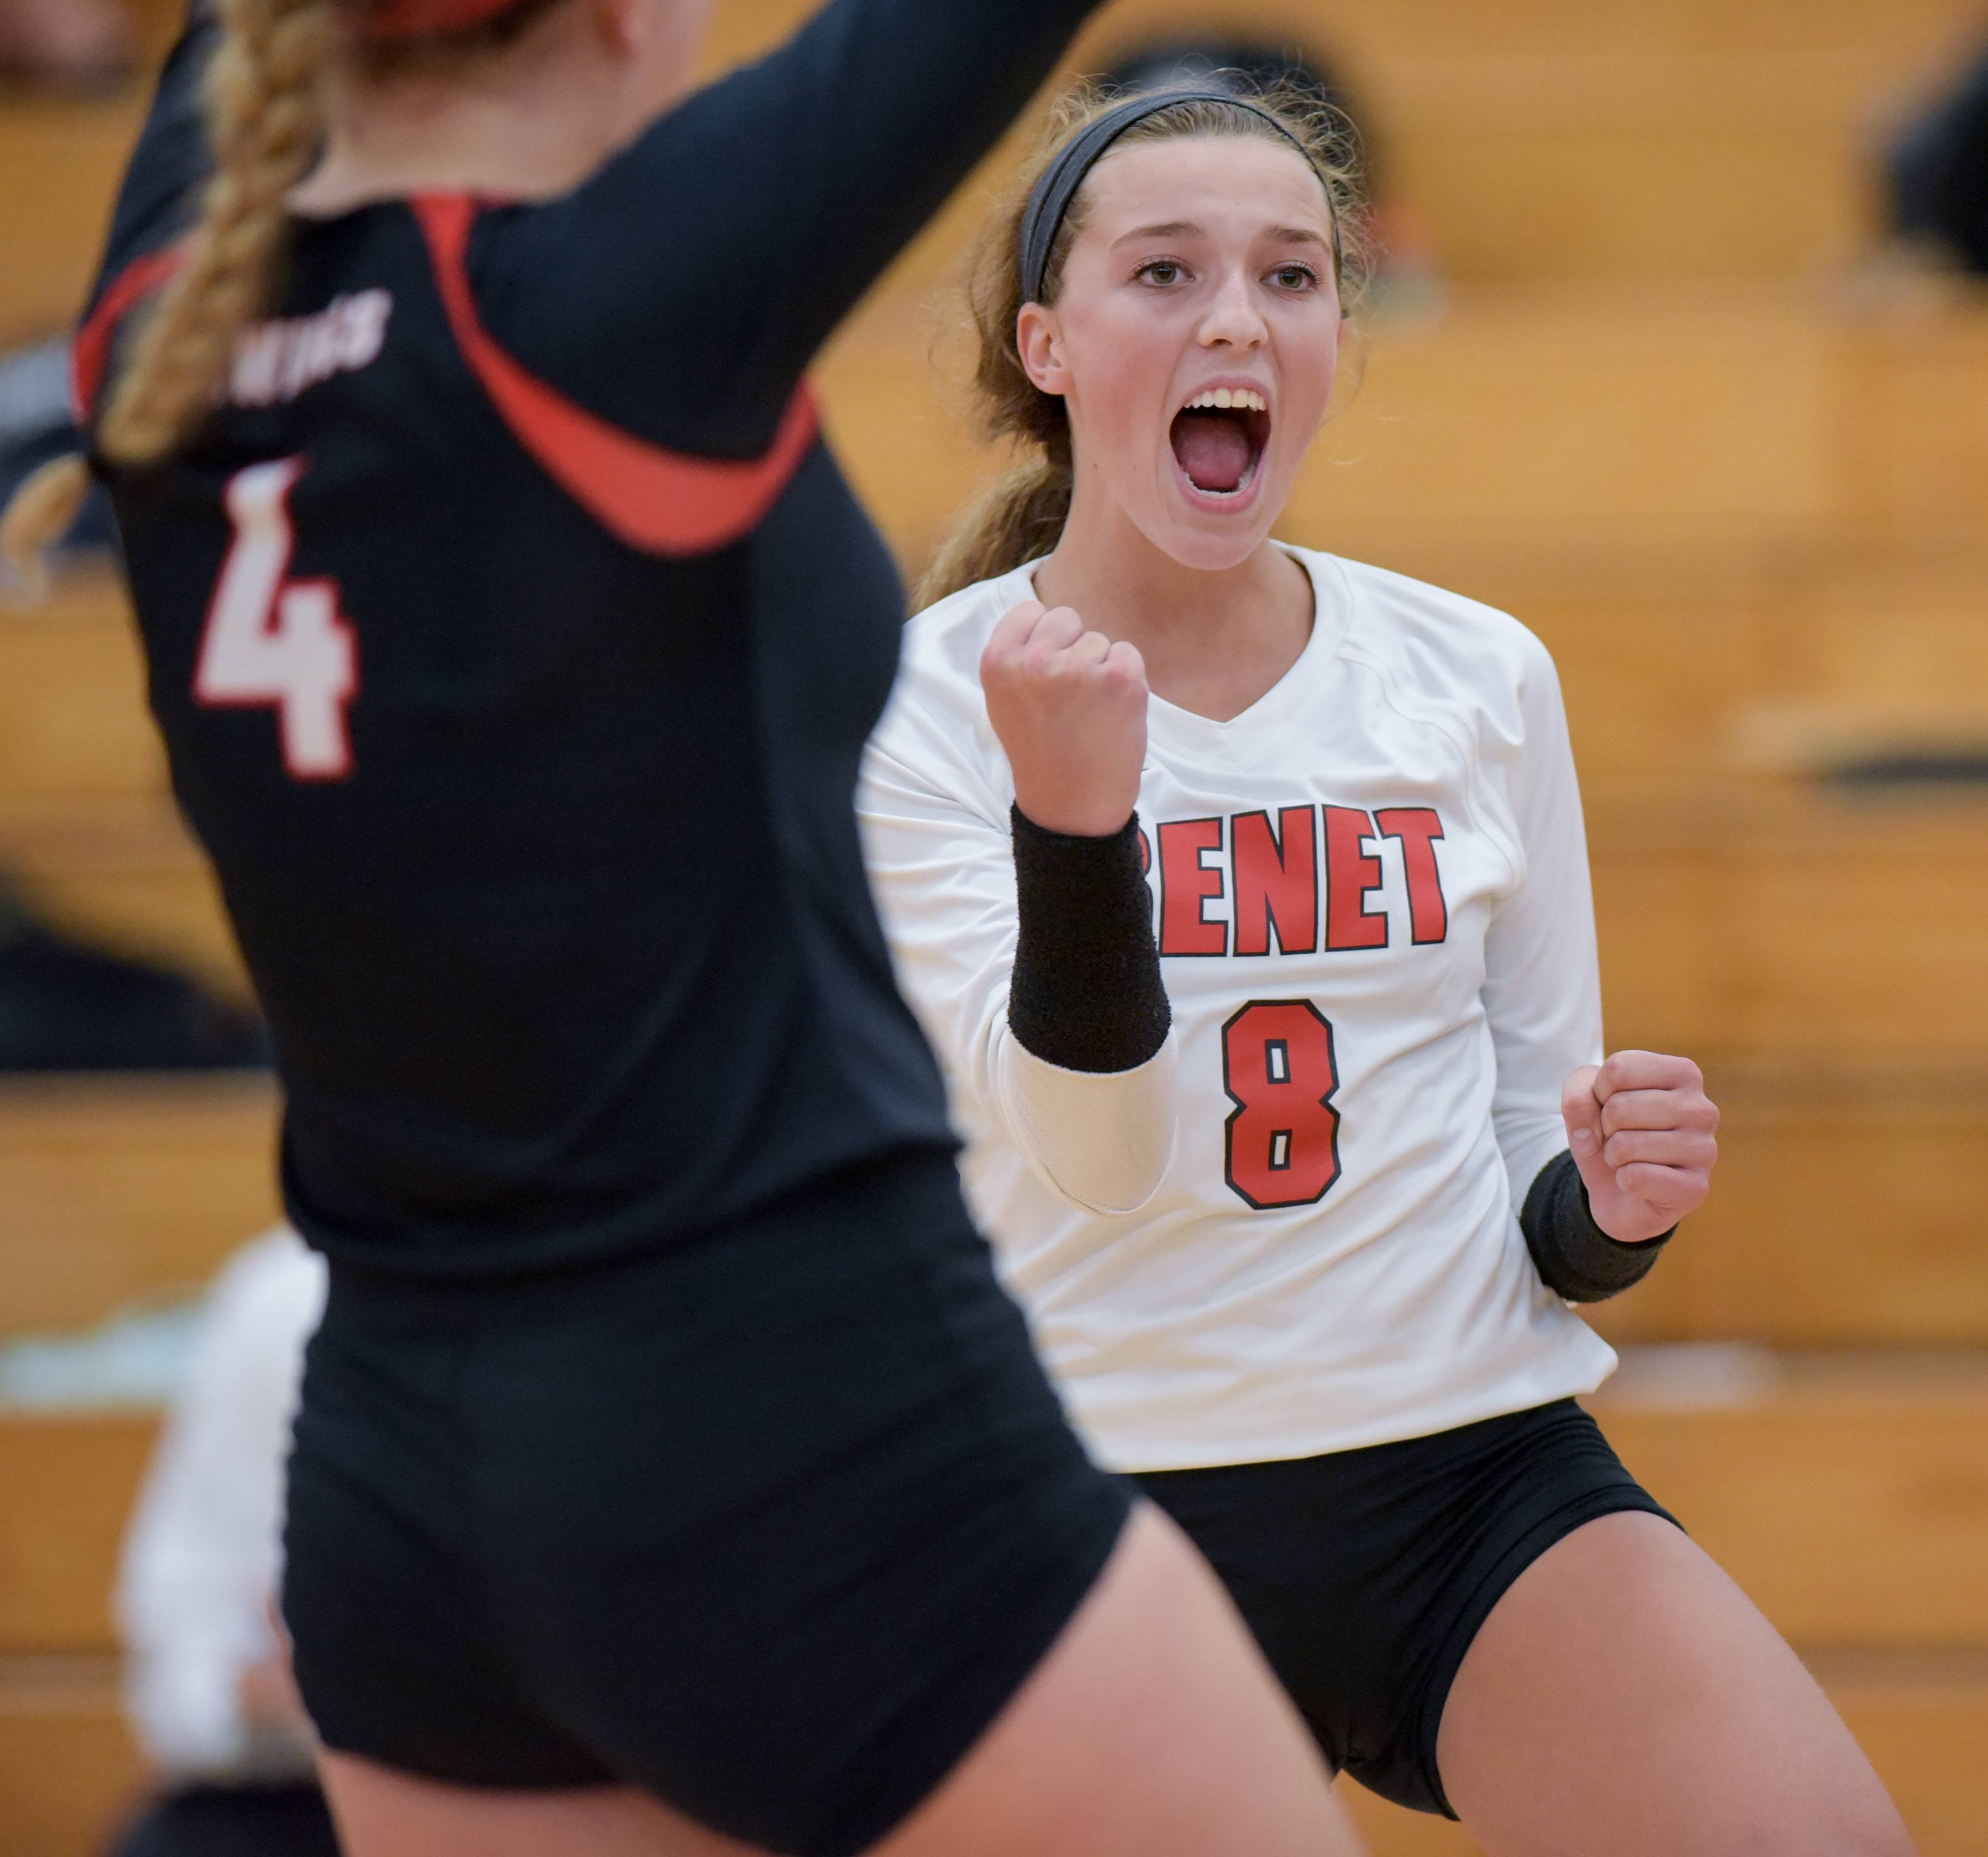 Images: Volleyball celebration in our best high school sports photos of the week